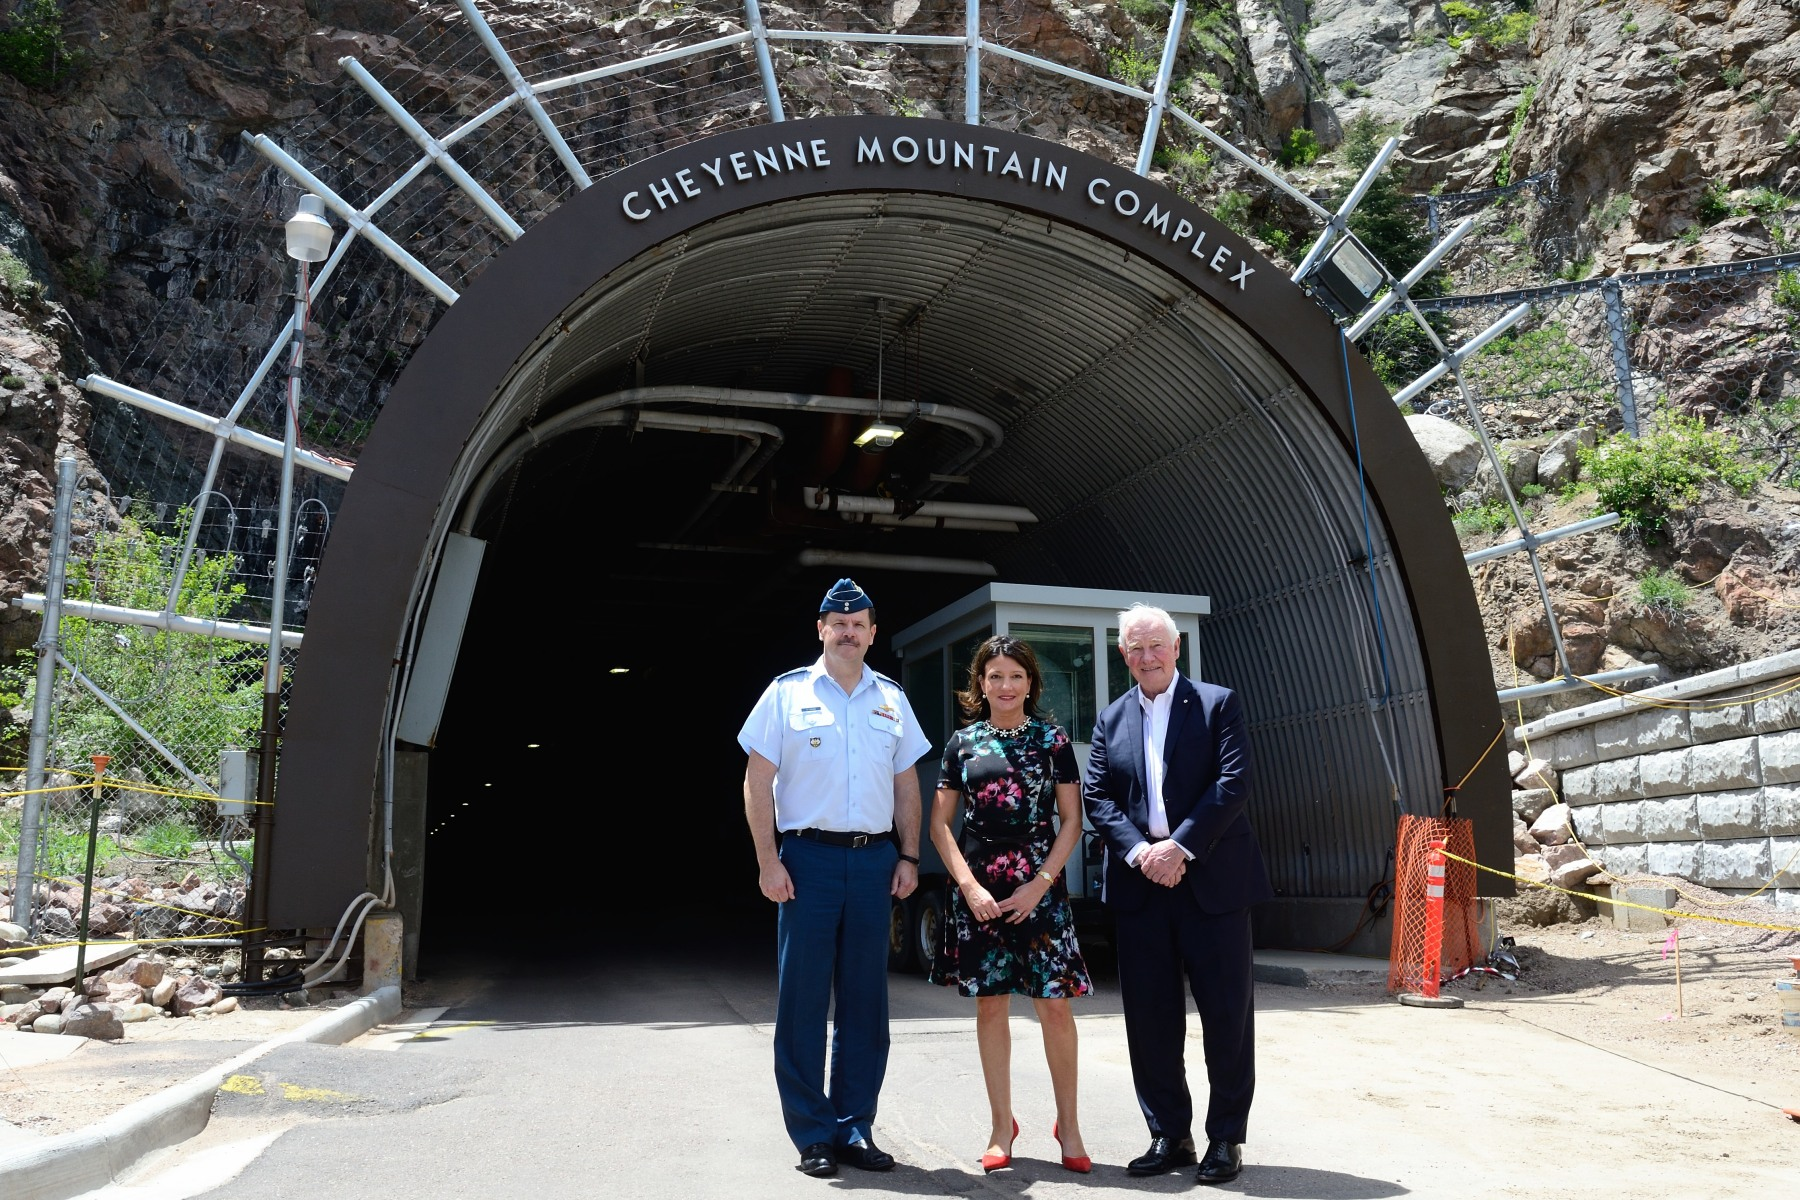 On the eve of Memorial Day, His Excellency visited the Cheyenne Mountain Complex, which serves as NORAD and U.S. Northern Command's Alternate Command Center and as a training site for crew qualification.